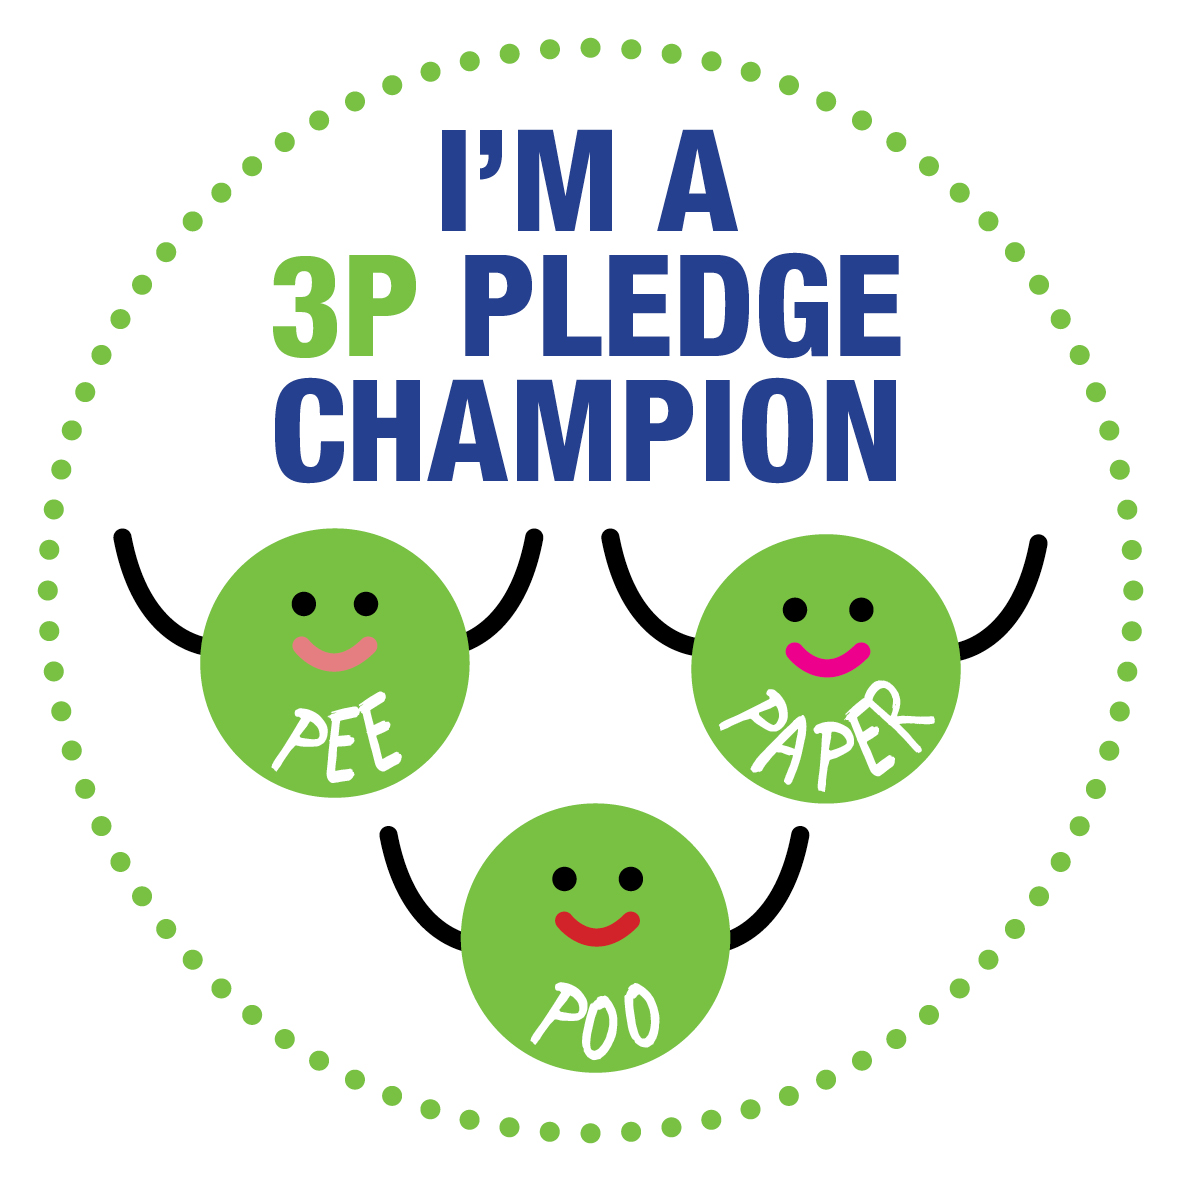 3P Pledge_I'mChampion_RGB